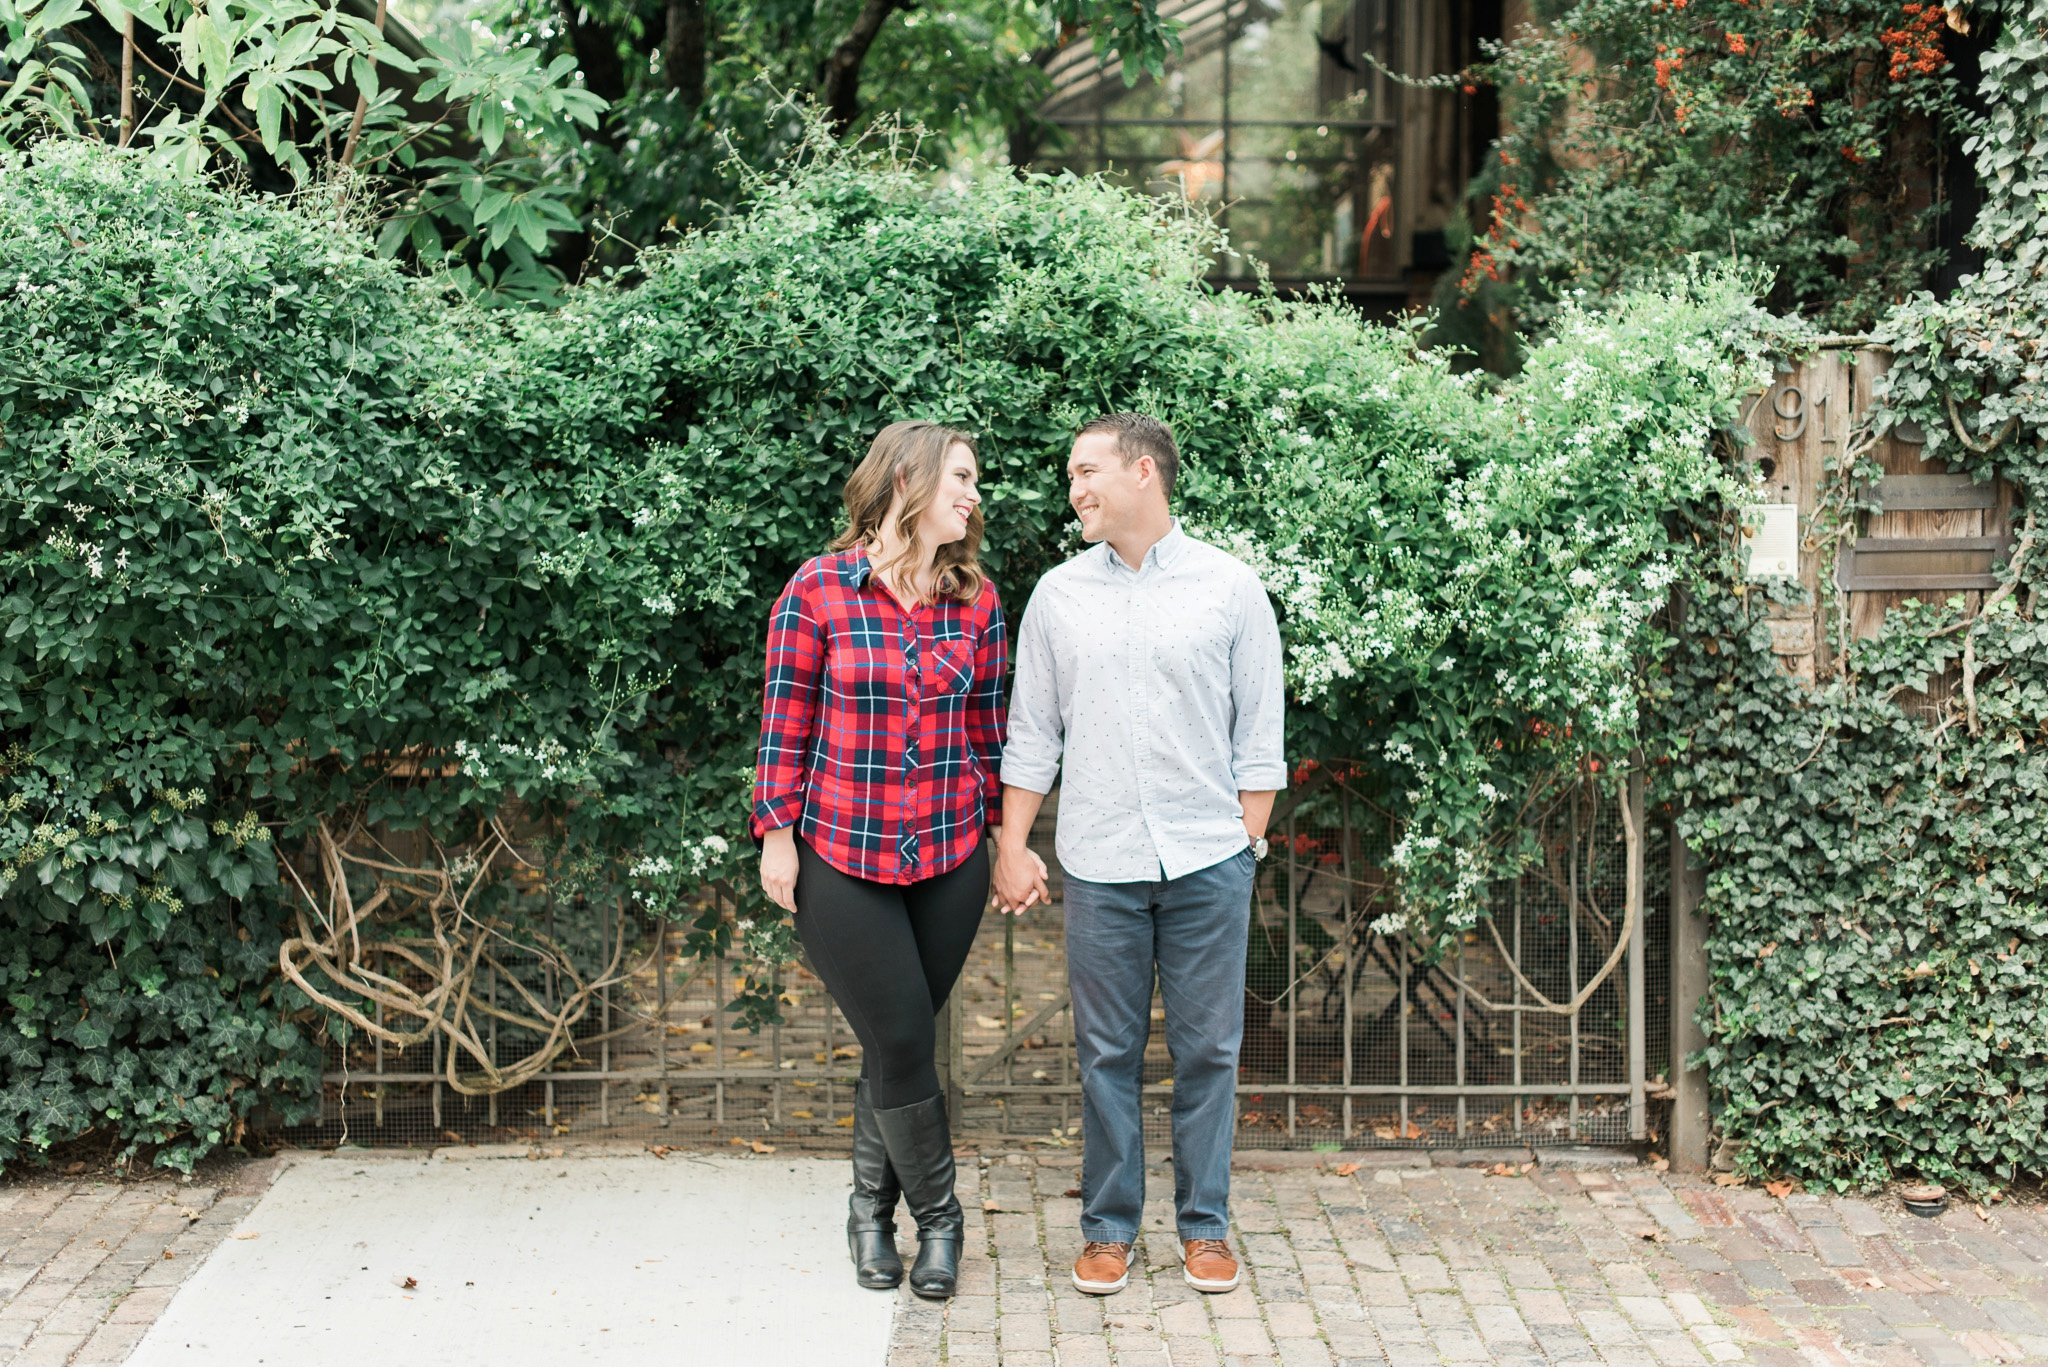 downtown-columbus-german-village-engagement-session-6.jpg